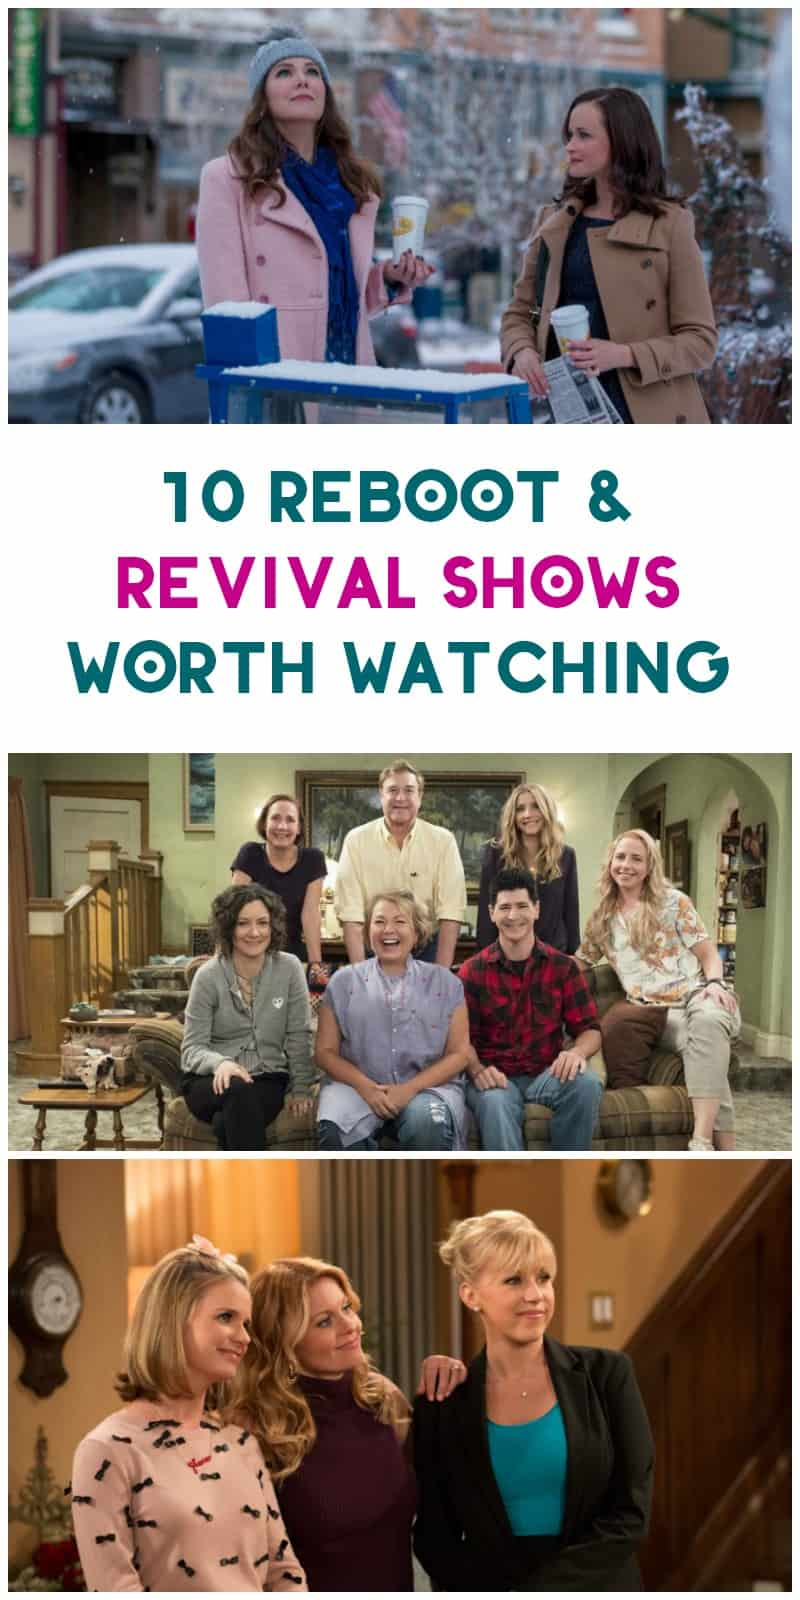 Everything old is new again, especially when it comes to revival shows! With all of our childhood favorites making a comeback, it's hard to decide what to watch first! I'm sharing my picks for 10 revival shows worth watching, along with five shows I really wish they'd bring back!